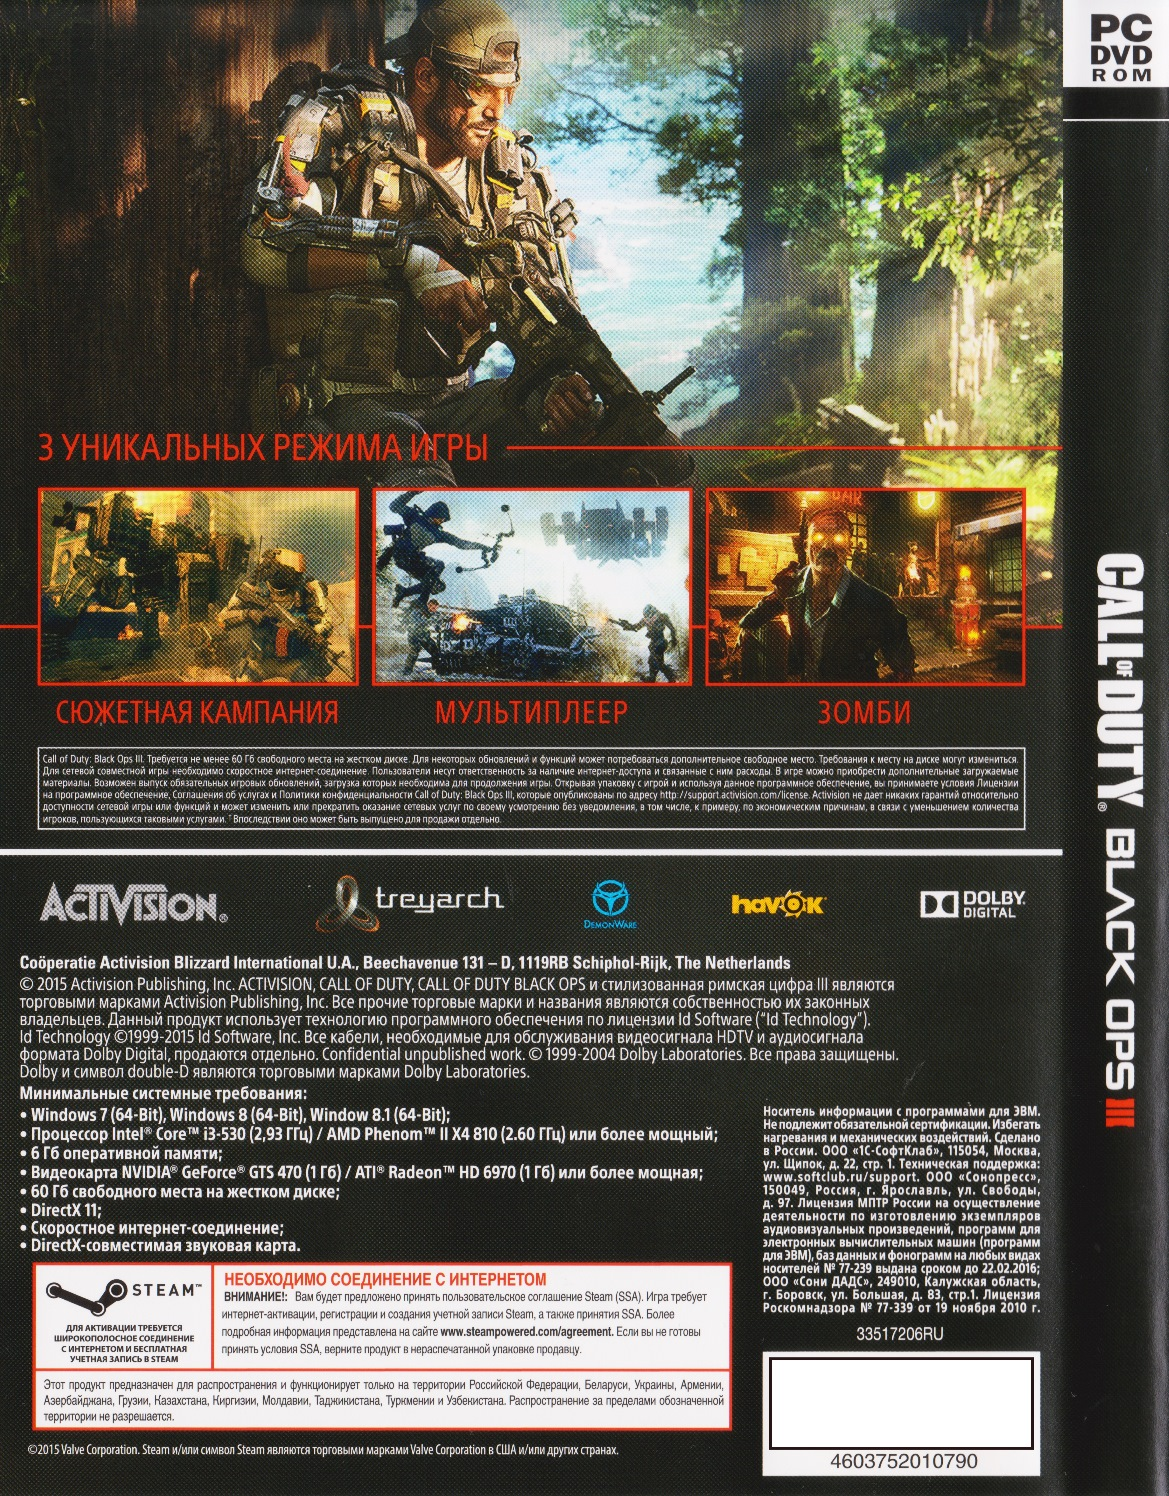 call of duty black ops 3 license key txt download